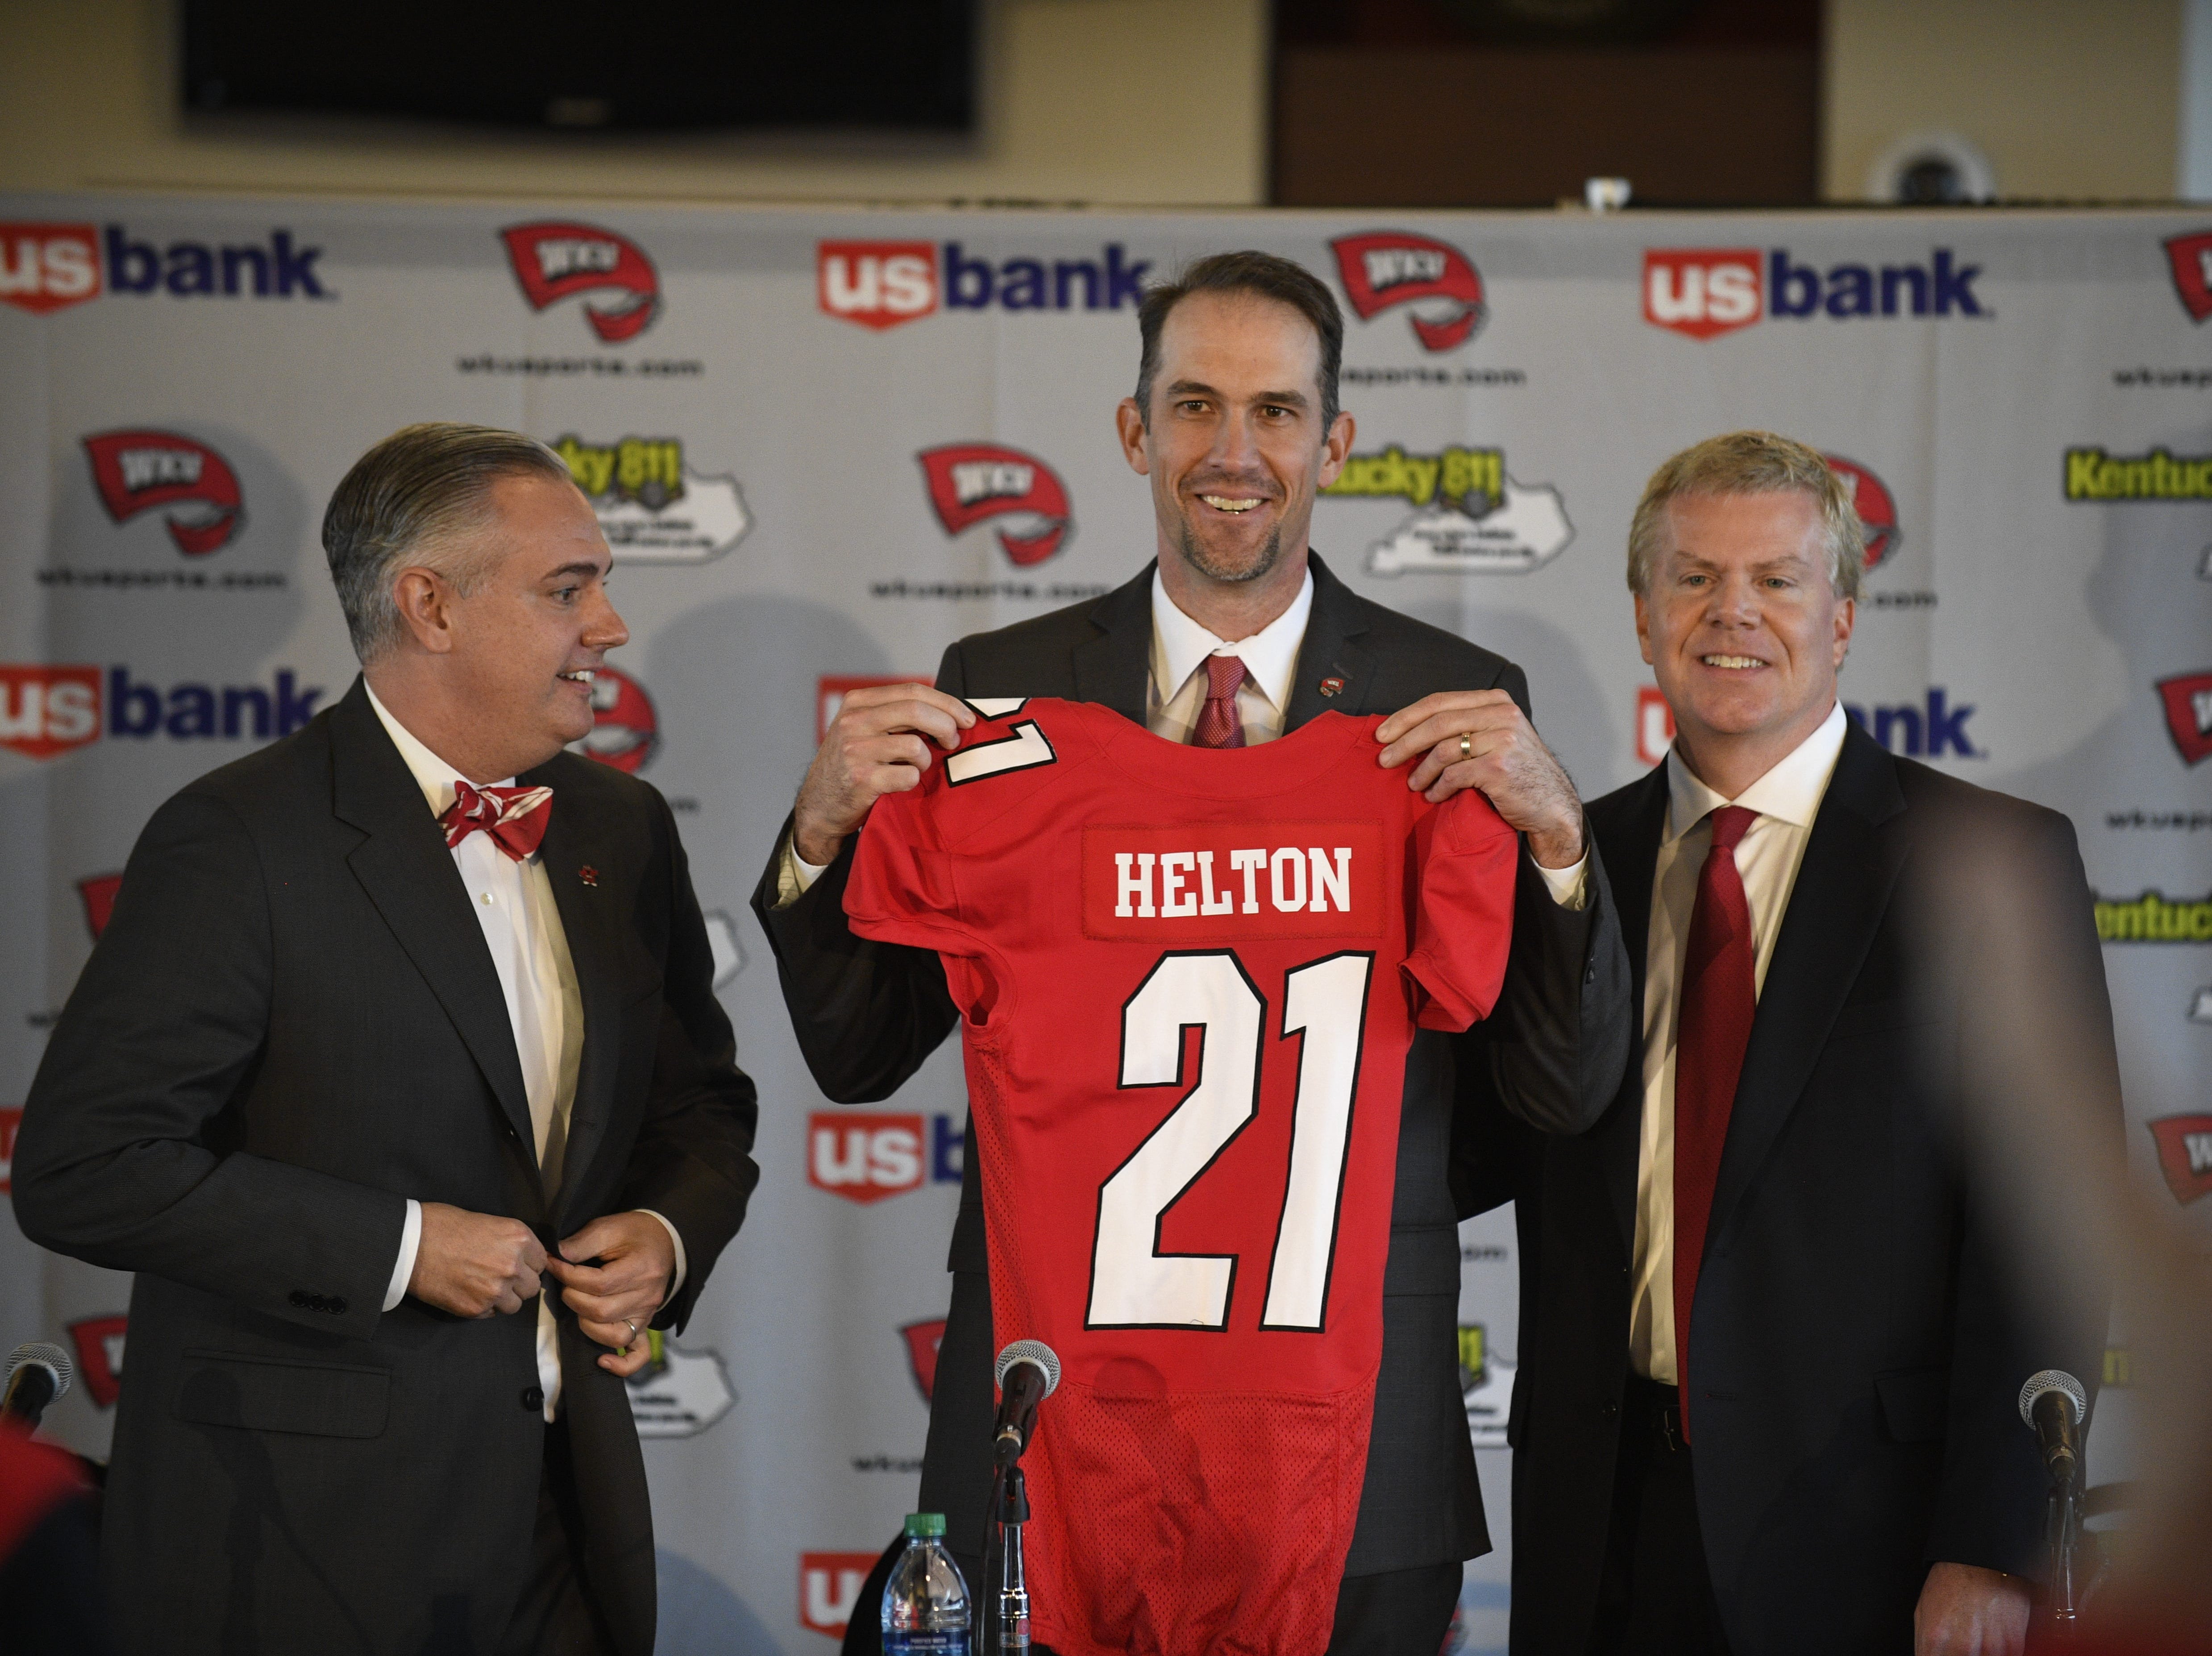 Western Kentucky's new head football coach Tyson Helton, center, holds up a jersey as WKU president Tim Caboni, left, and athletic director Todd Stewart, right,  pose for a photo at the NCAA college football press conference, Tuesday, Nov. 27, 2018, at the Jack and Jackie Harbaugh Stadium Club at Houchens-Smith Stadium in Bowling Green, Ky.